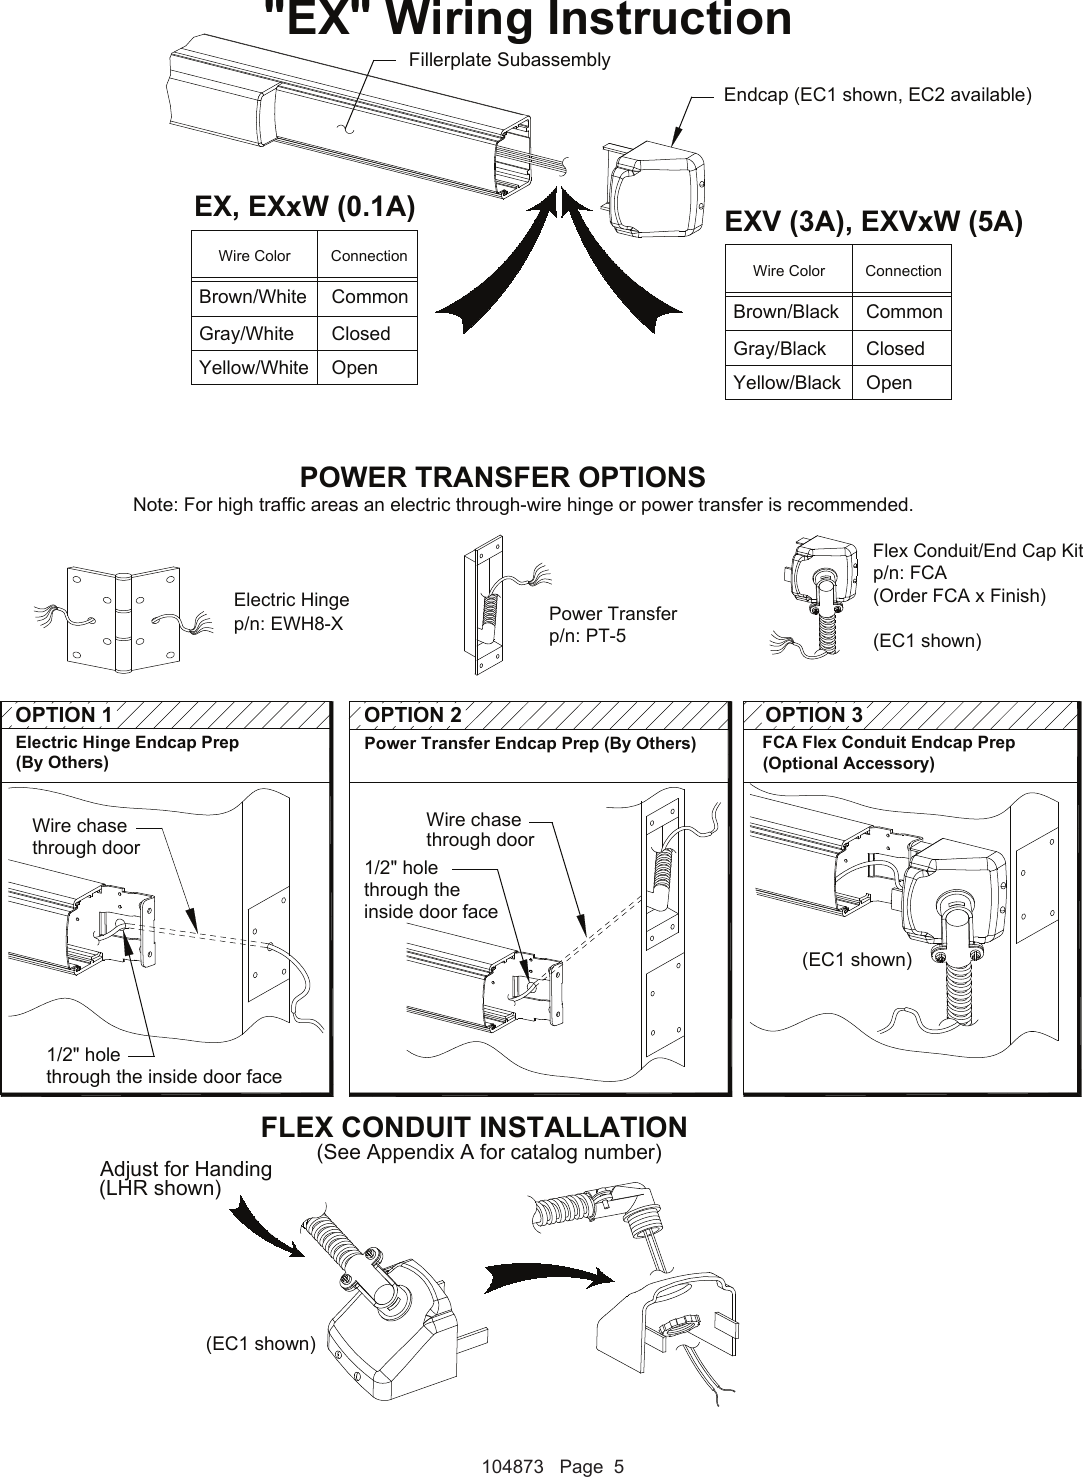 Detex Electrical Instructions For Advantex Ea Or Ex S 104873 Wiring Diagrams Page 5 Of 7